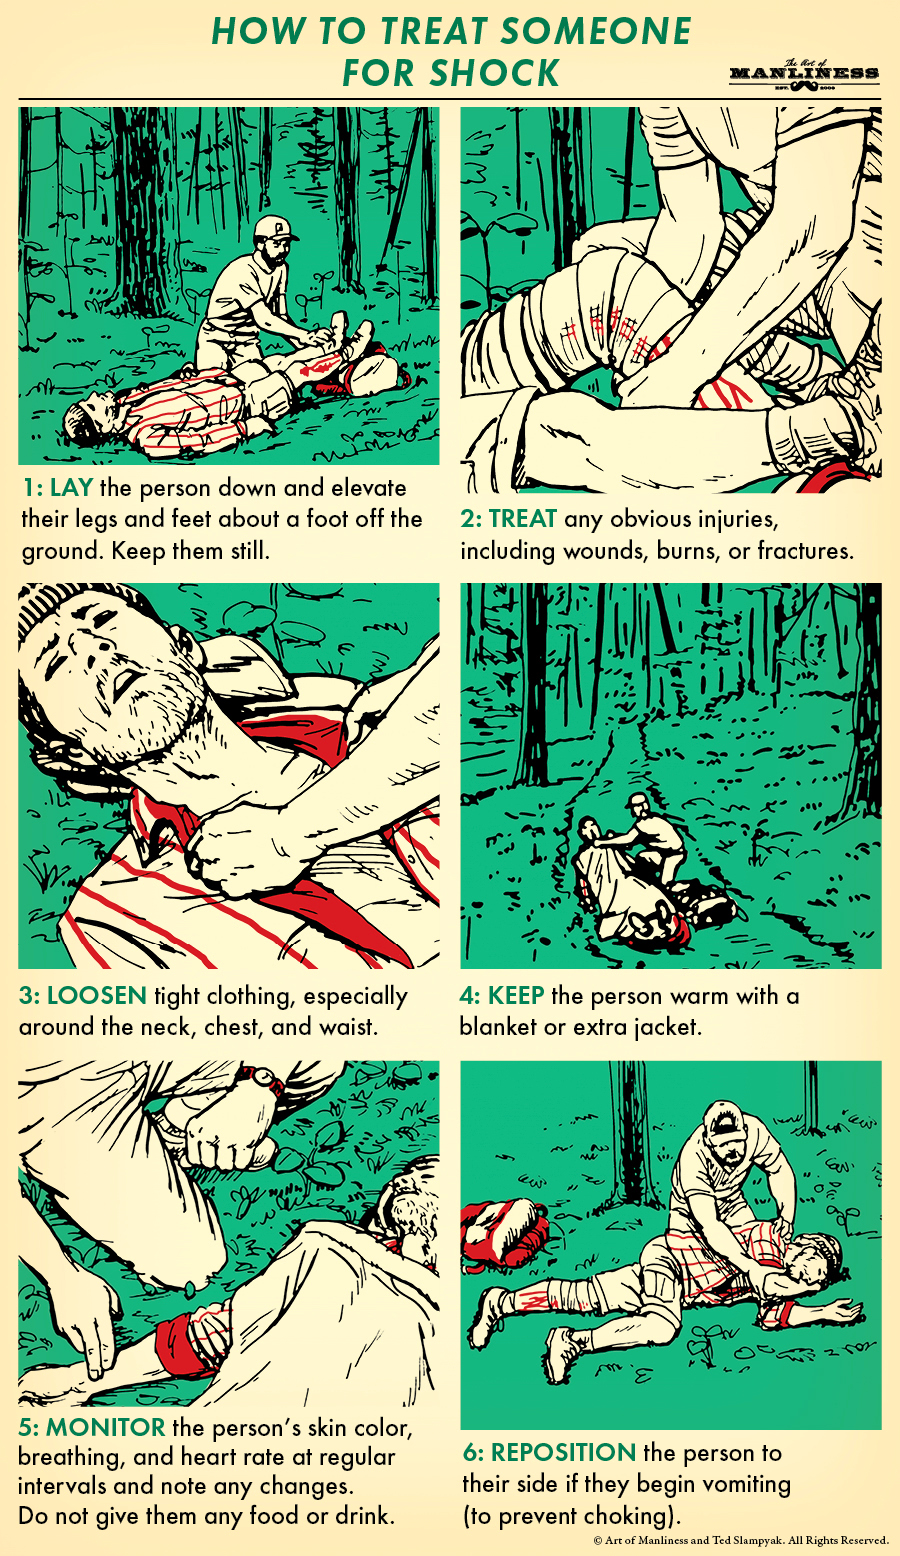 Poster by Art of Manliness regarding how to treat a person for a shock.